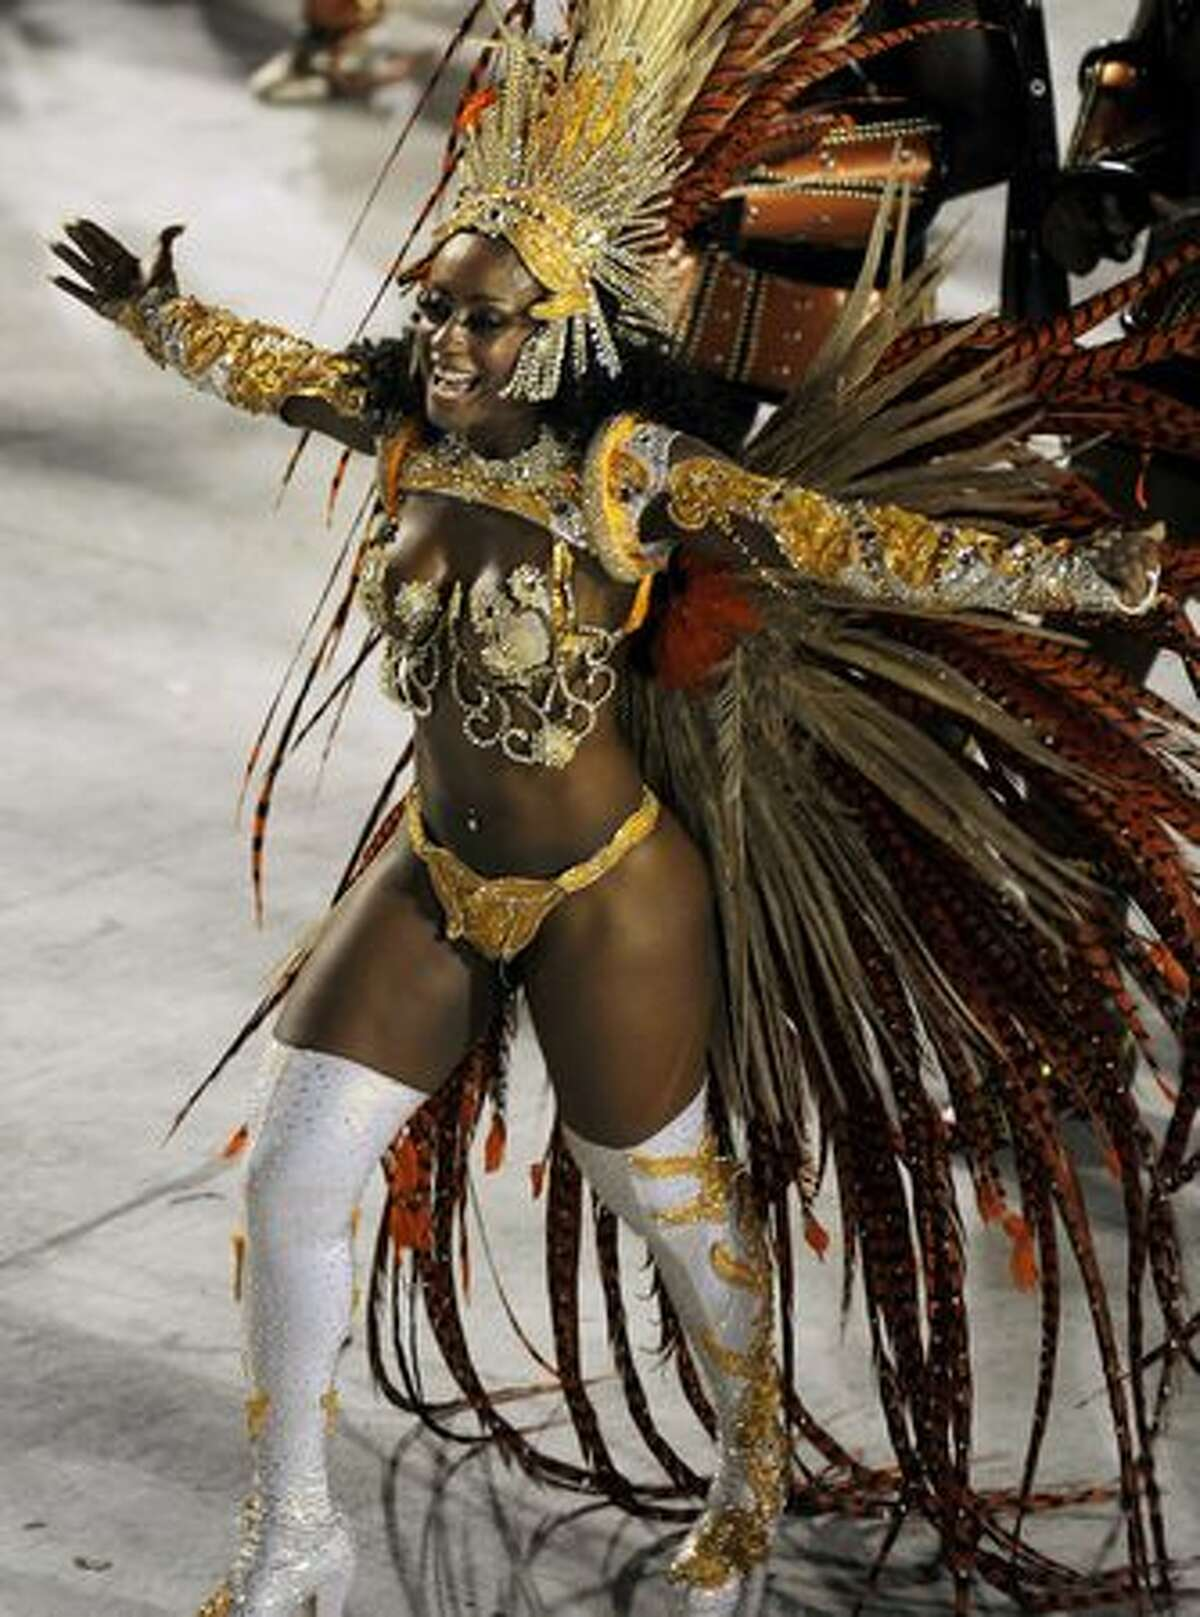 A reveller of the samba school Portela performs during the second night of Rio's famed Carnival, at the Sambodrome in Rio de Janeiro, Brazil.